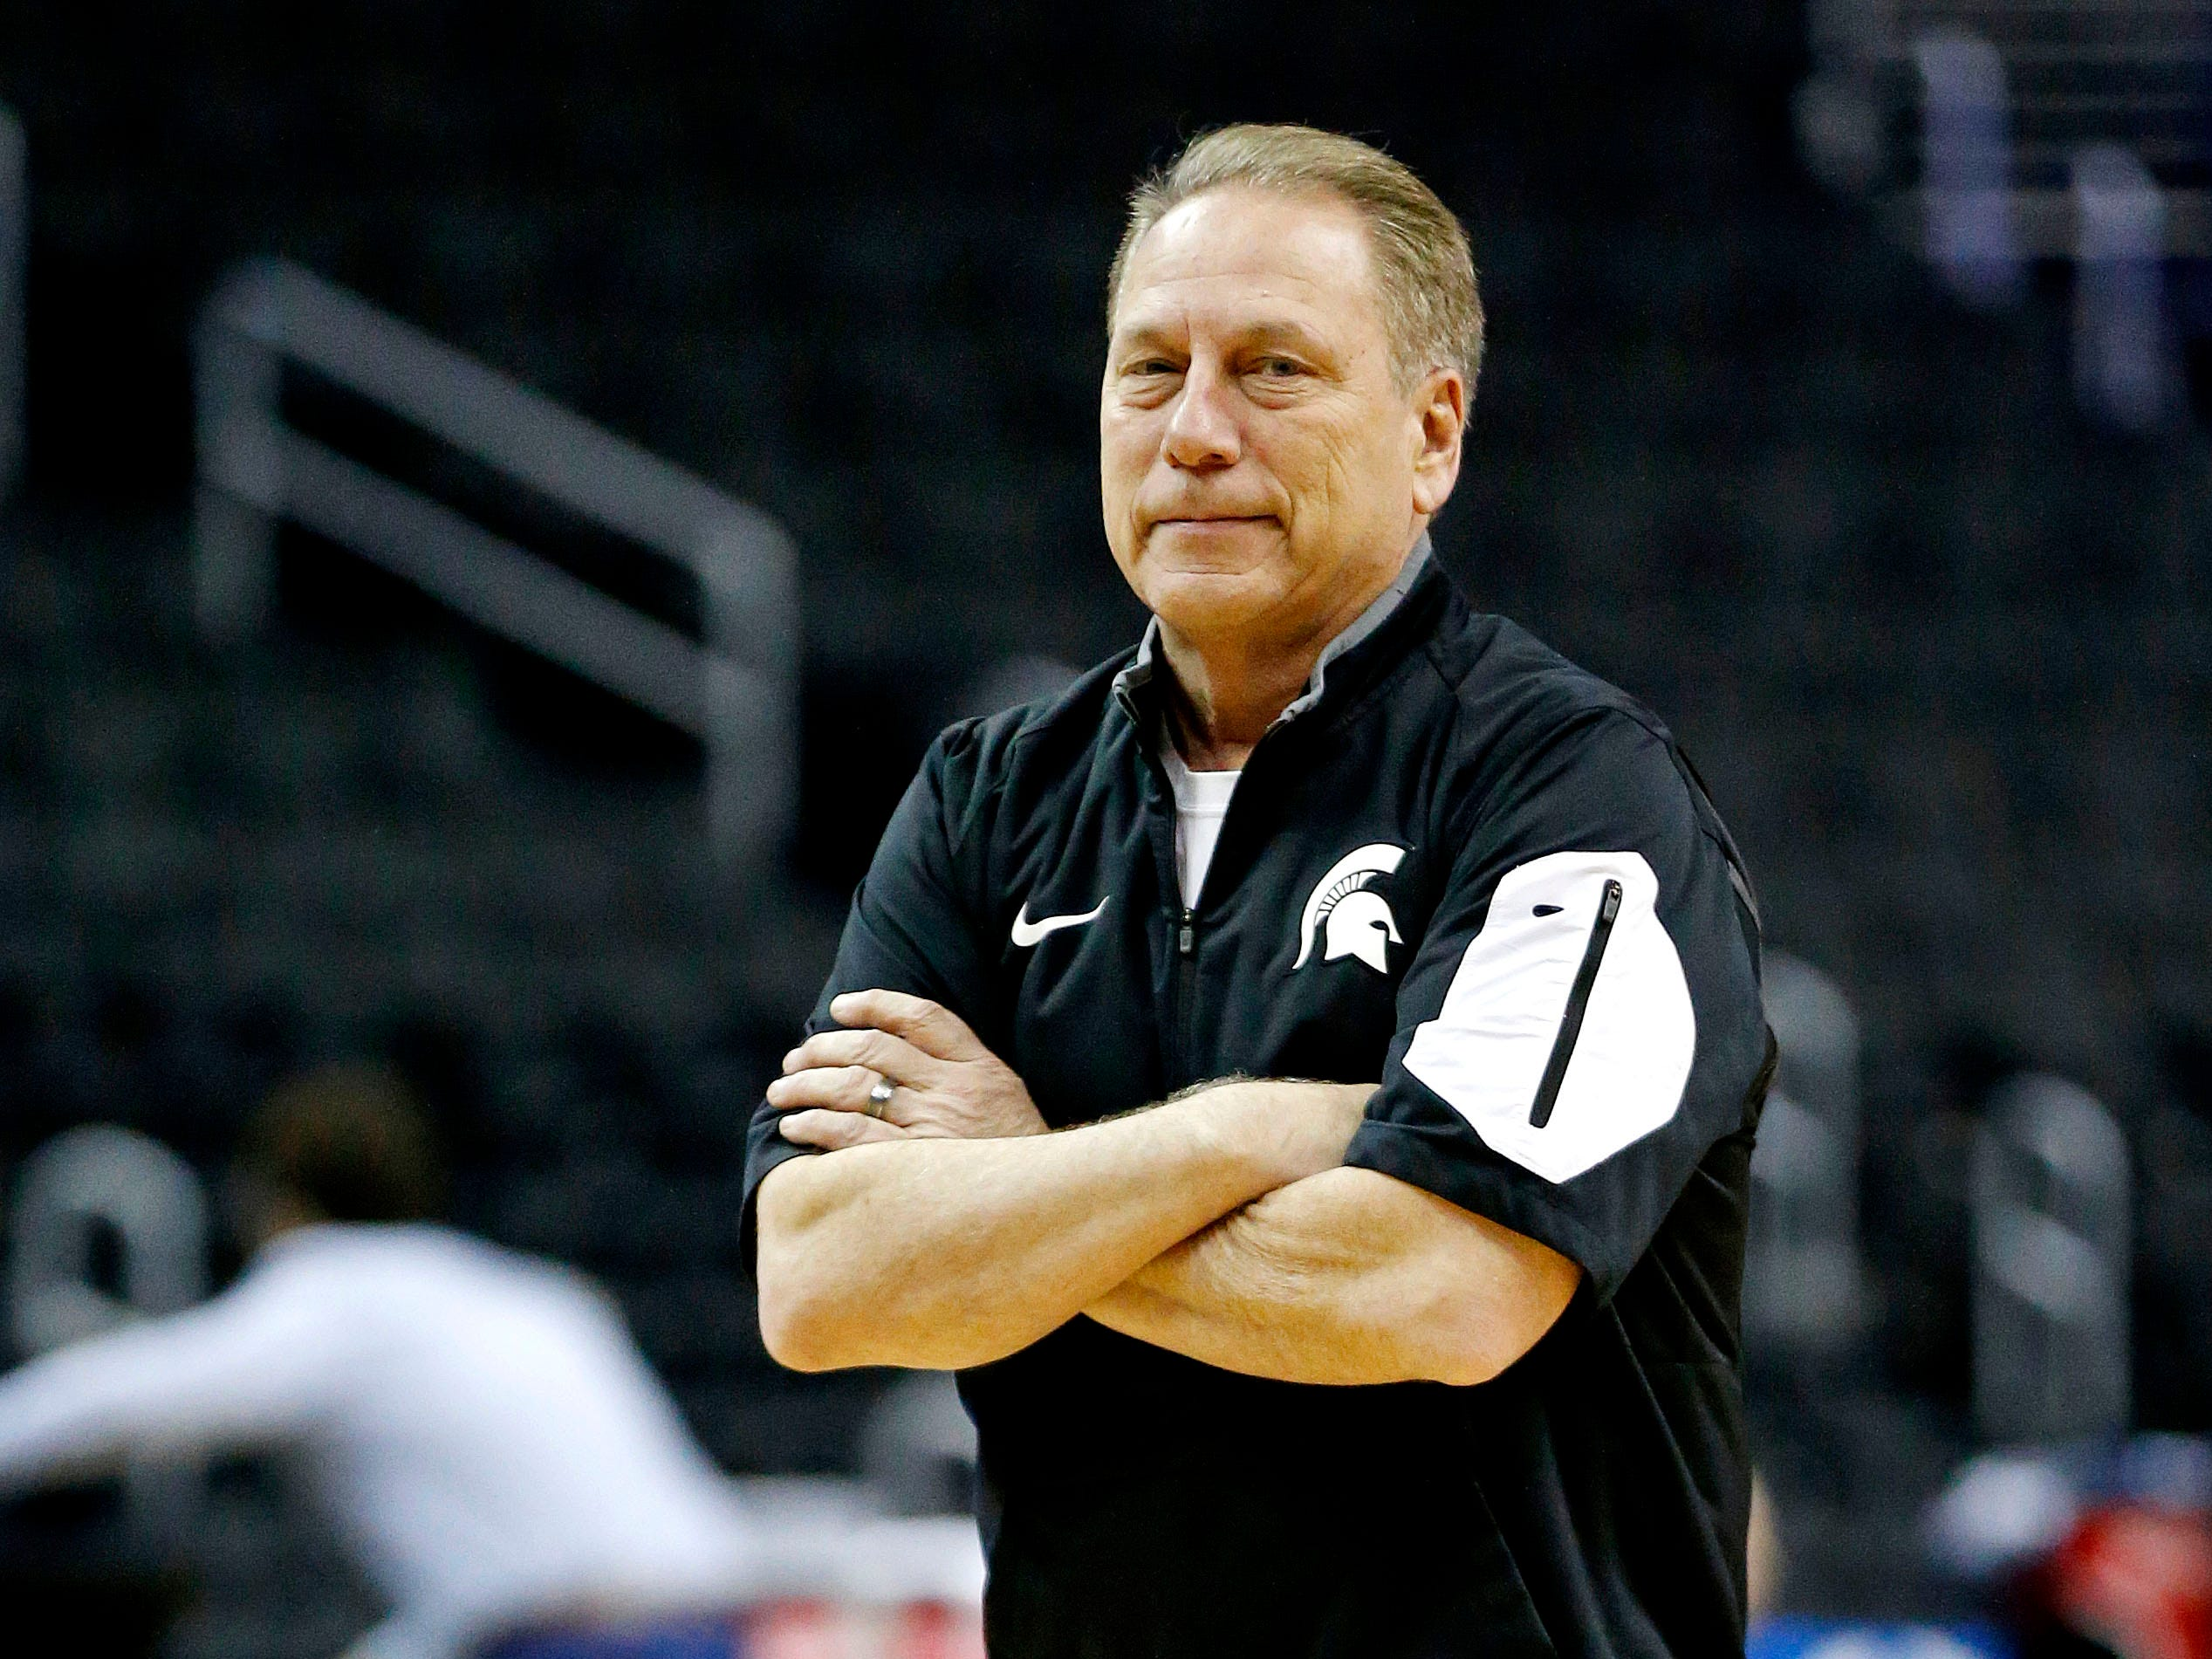 Mar 28, 2019; Washington, DC, USA; Michigan State Spartans head coach Tom Izzo during practice for the east regional of the 2019 NCAA Tournament at Capital One Arena. Mandatory Credit: Amber Searls-USA TODAY Sports